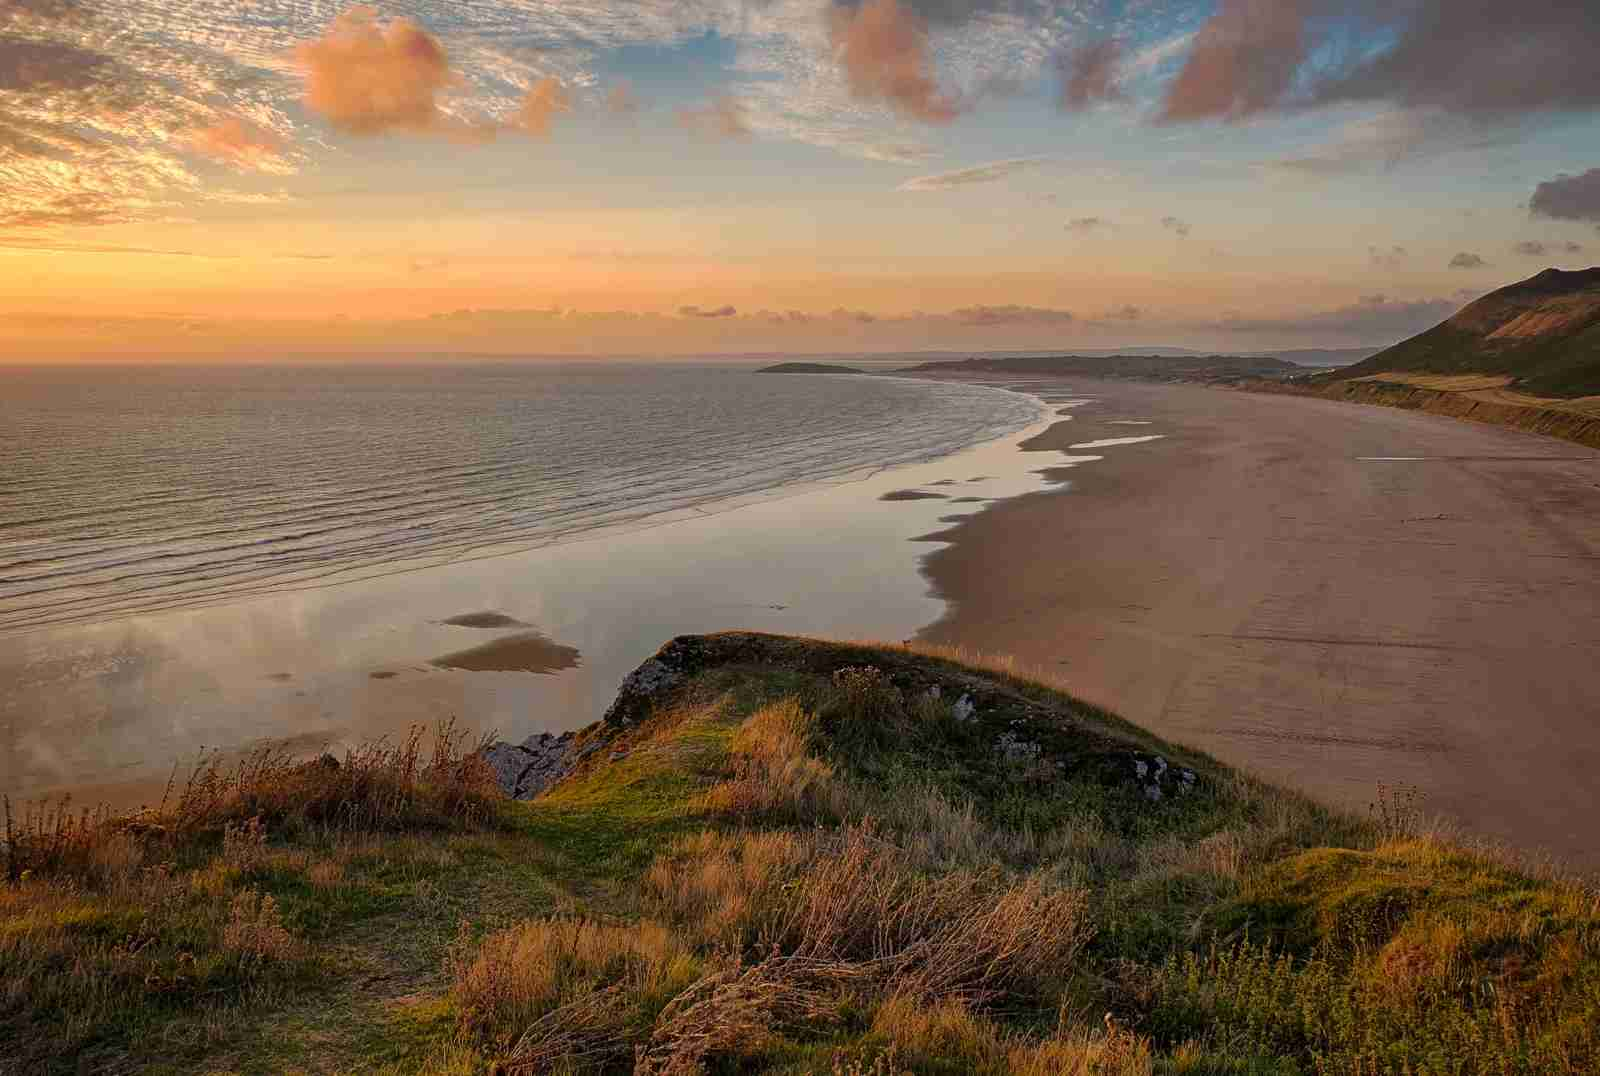 Rhossili Beach. (Photo by stewart black / Getty Images)